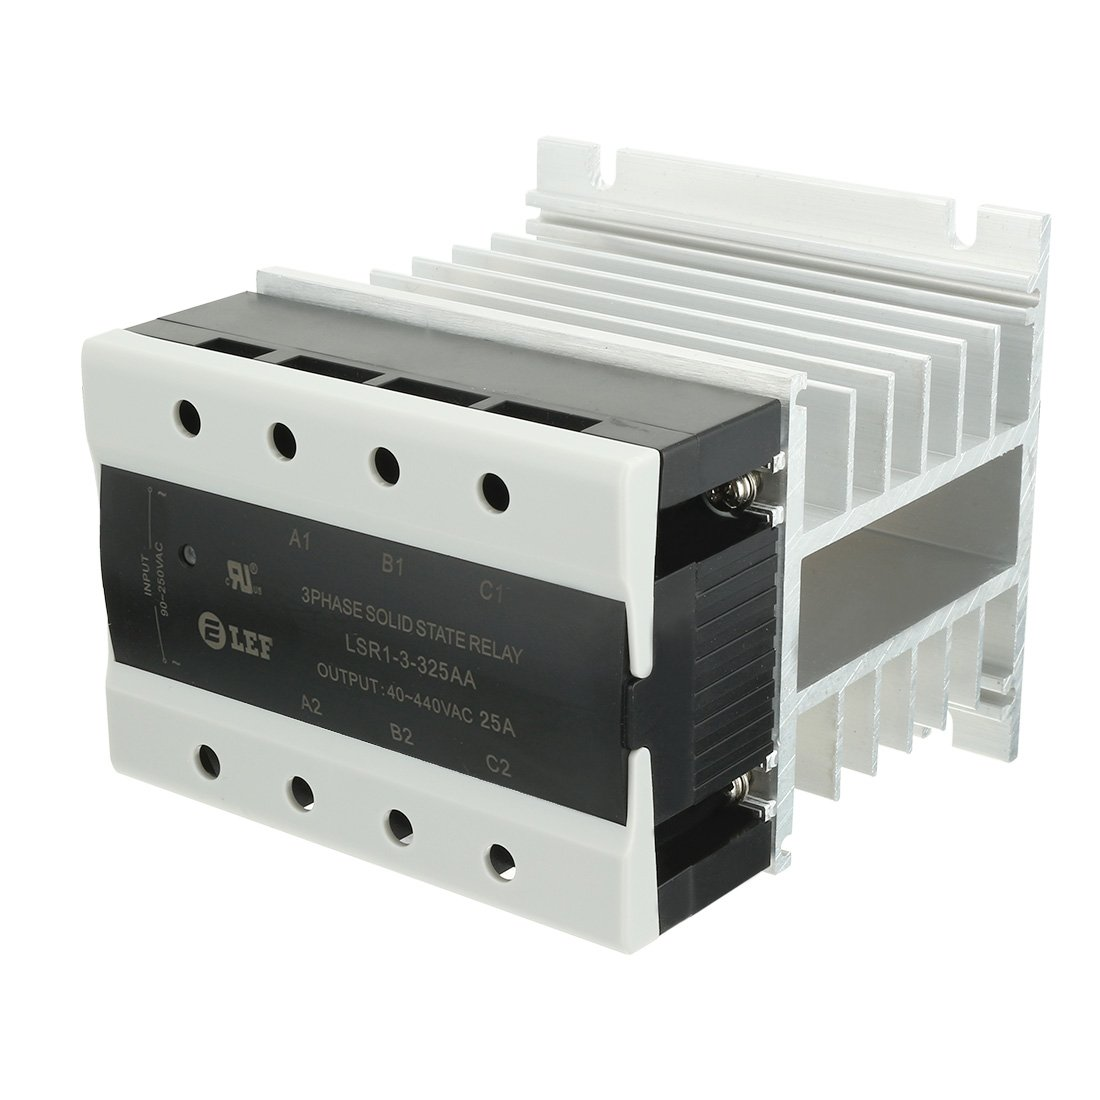 Uxcell Ac 40a 90 250vac To 40 440vac Ssr Thermal Solid State Relay Latch Up Compound 3 Phase Heat Sink Home Improvement